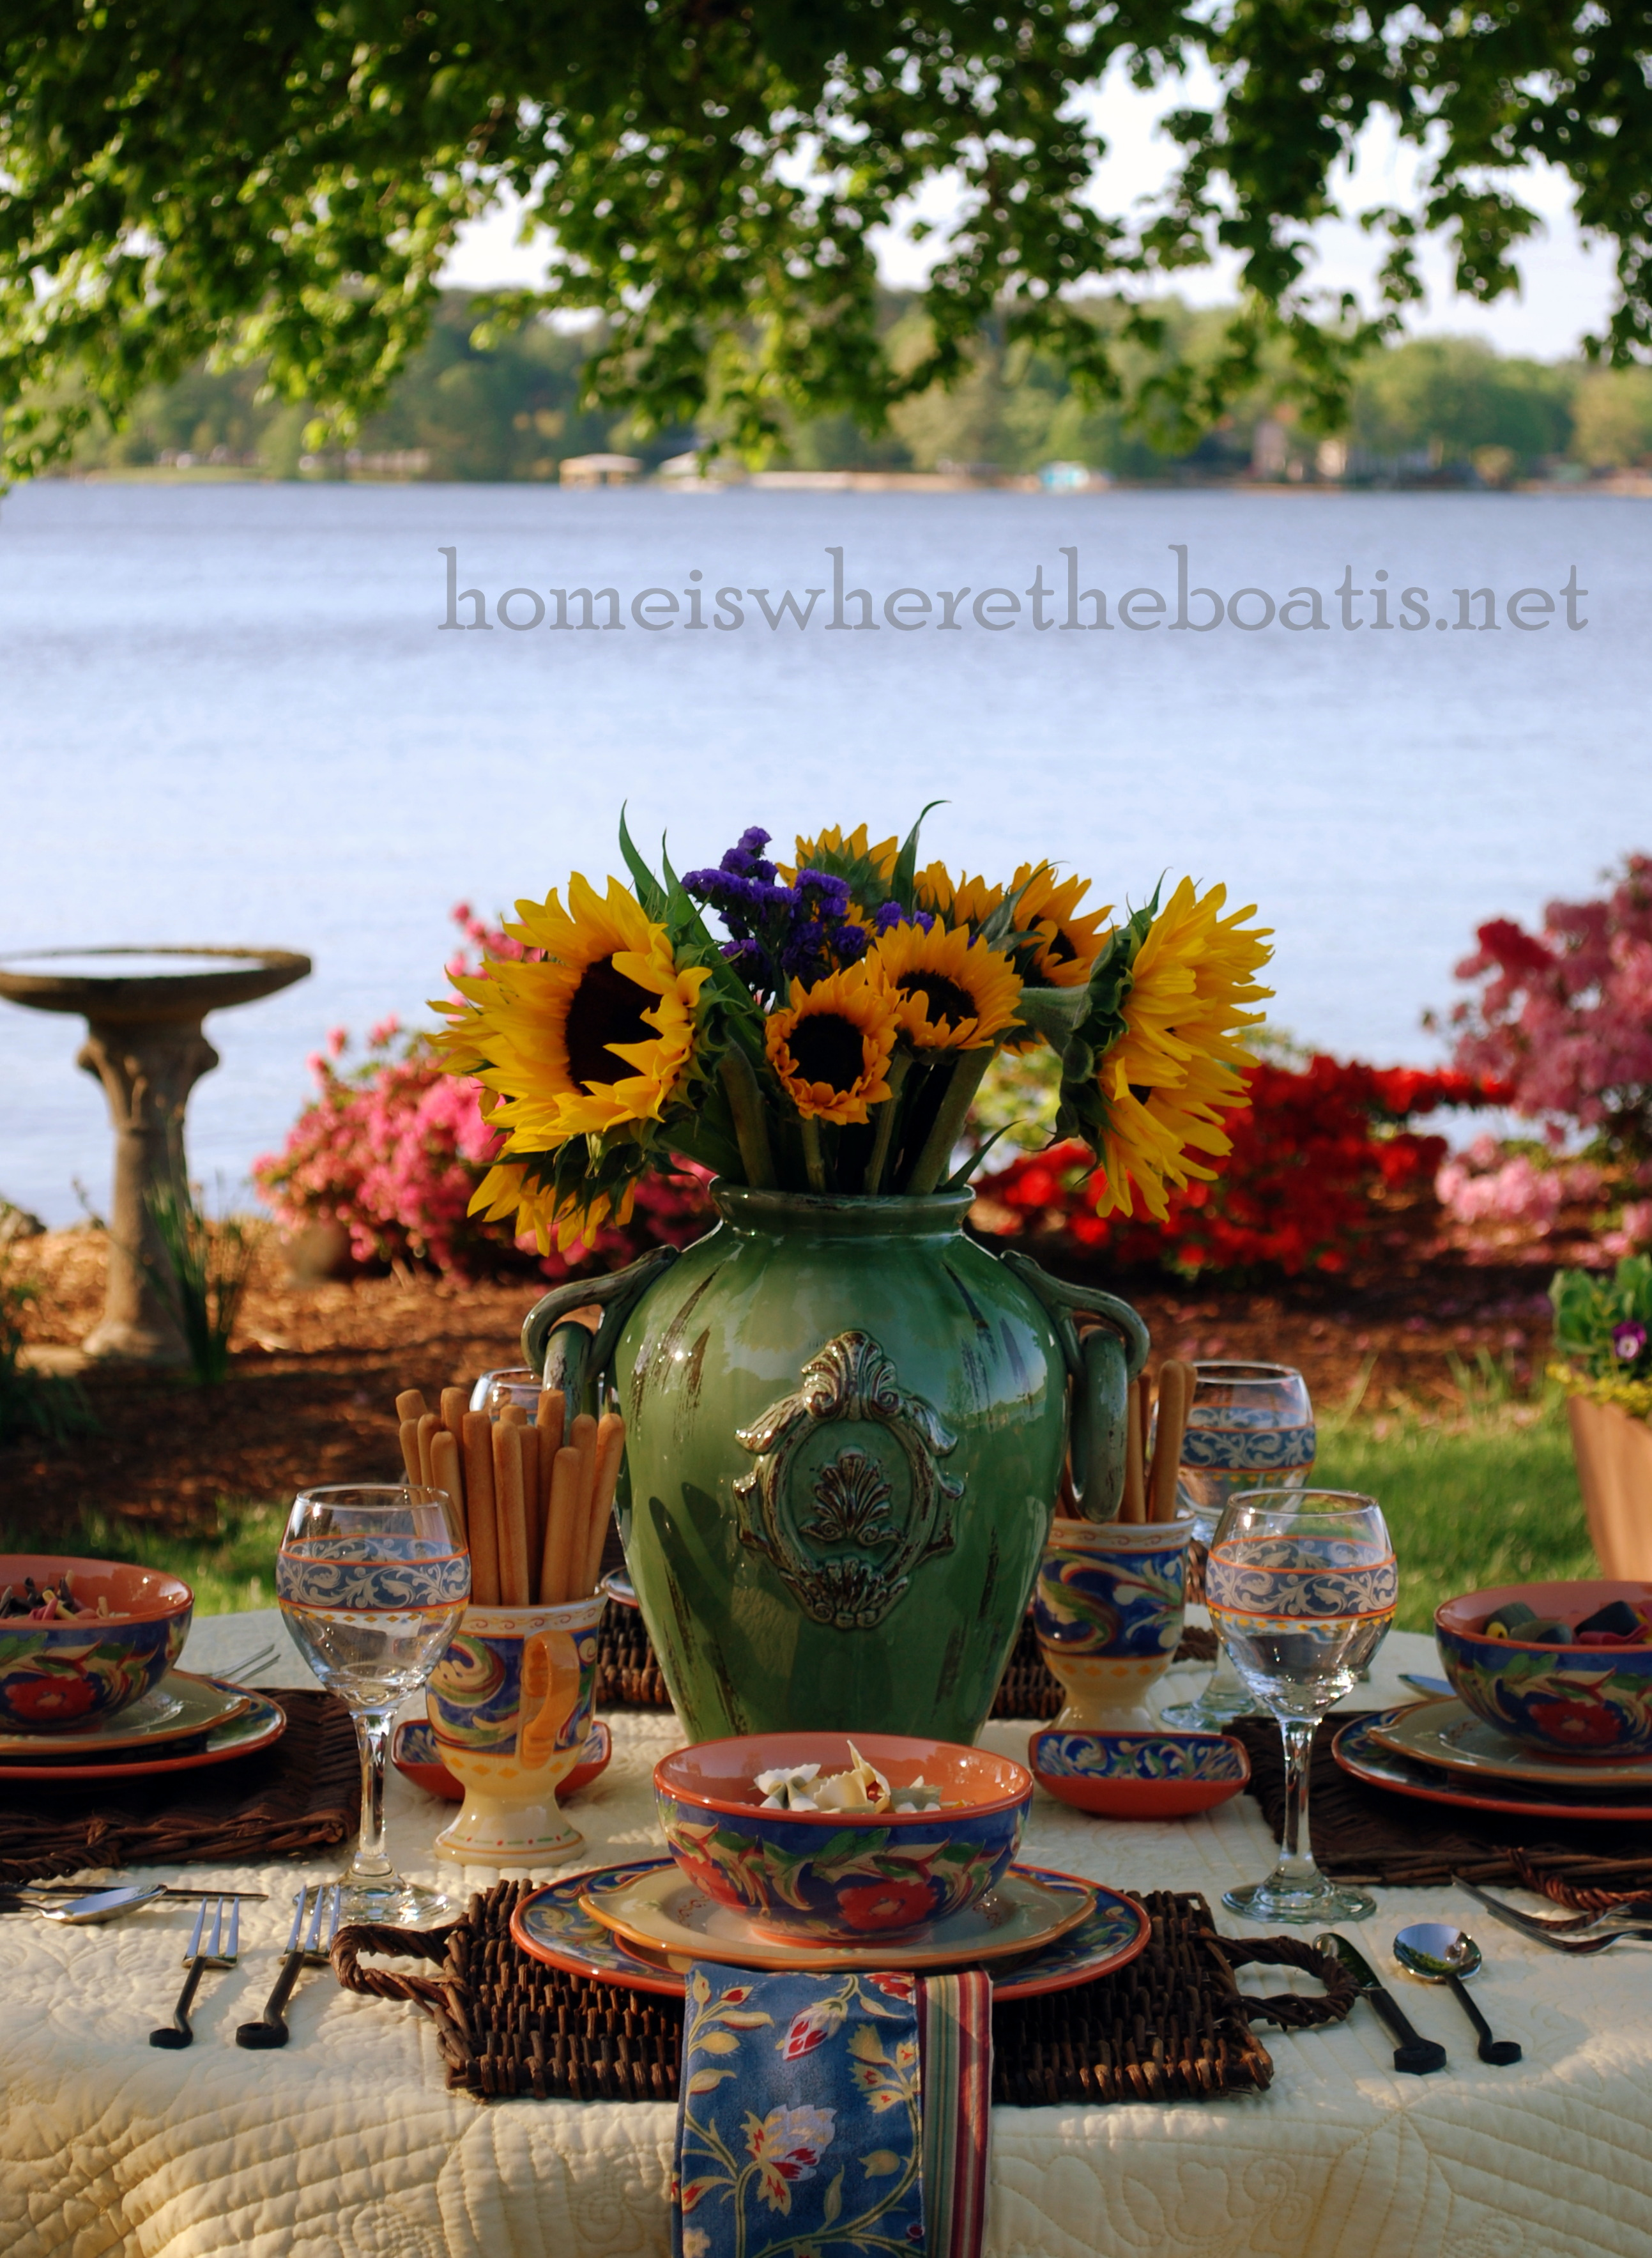 ... Iu0027m at the table enjoying some welcome sunshine flowers and dining al fresco with the vibrant collection of Villa della Luna dinnerware! & At the Table~ Villa della Luna u2013 Home is Where the Boat Is